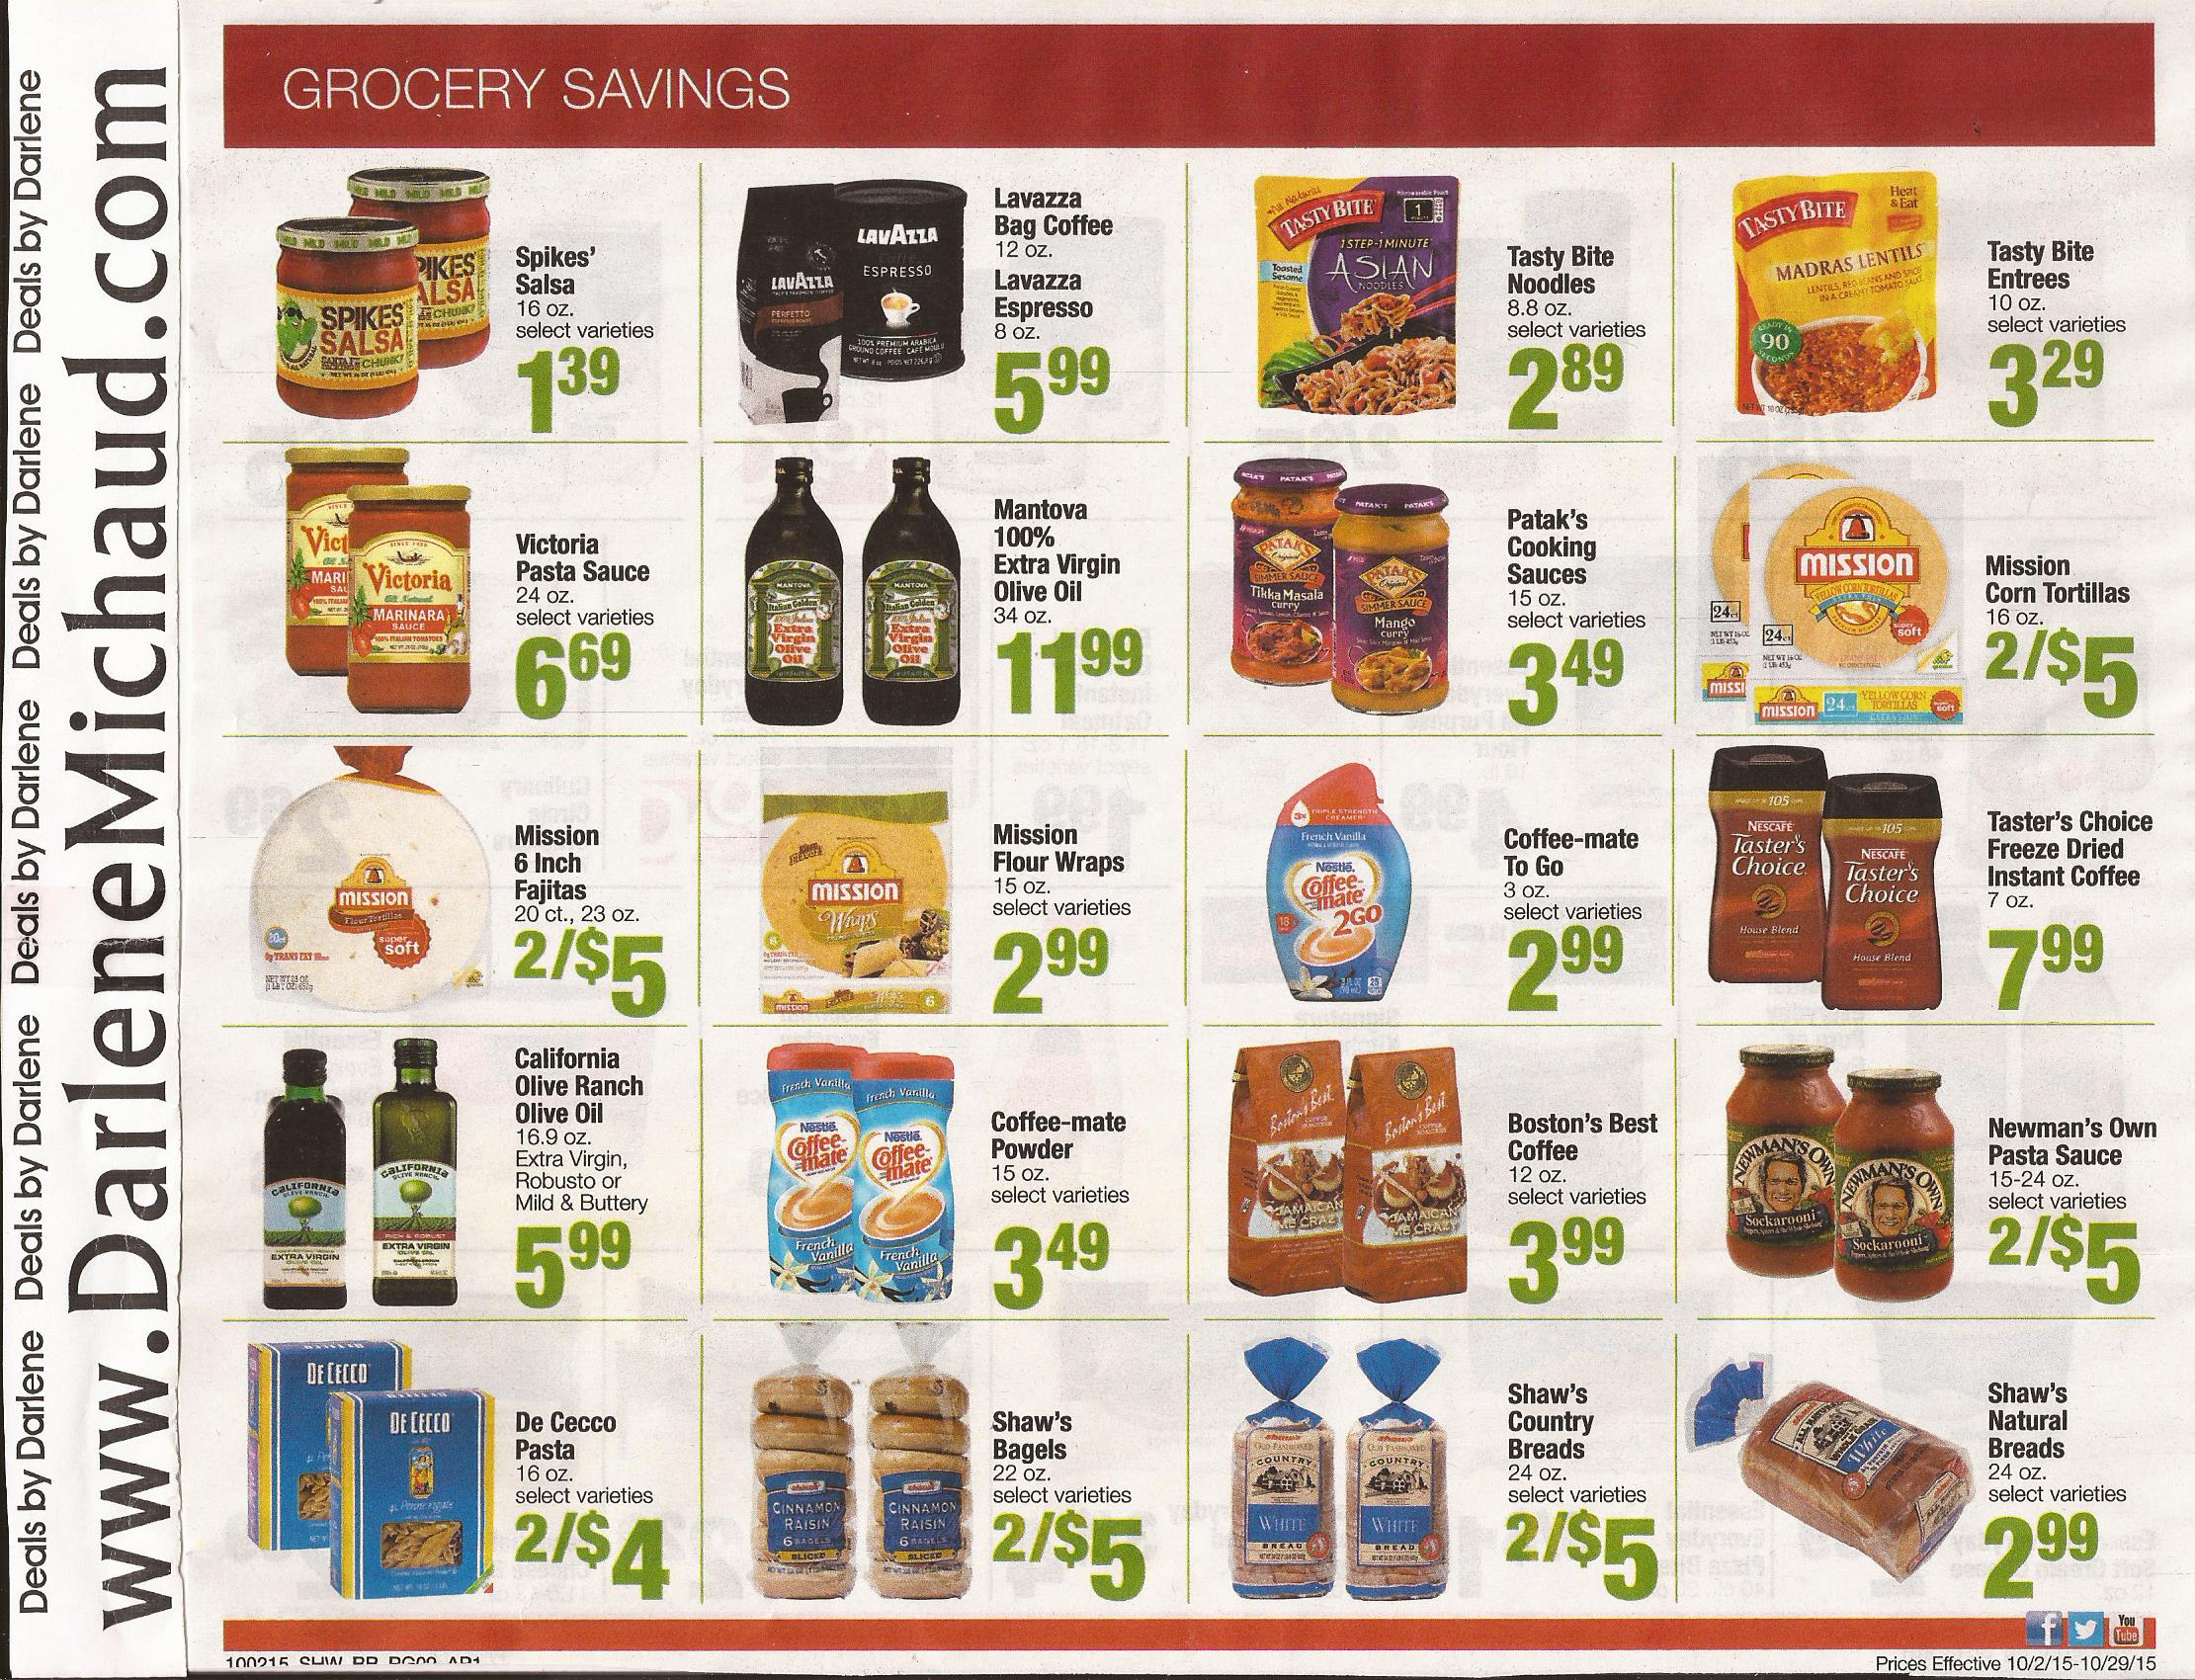 shaws-big-book-savings-10-2-10-29-page-09